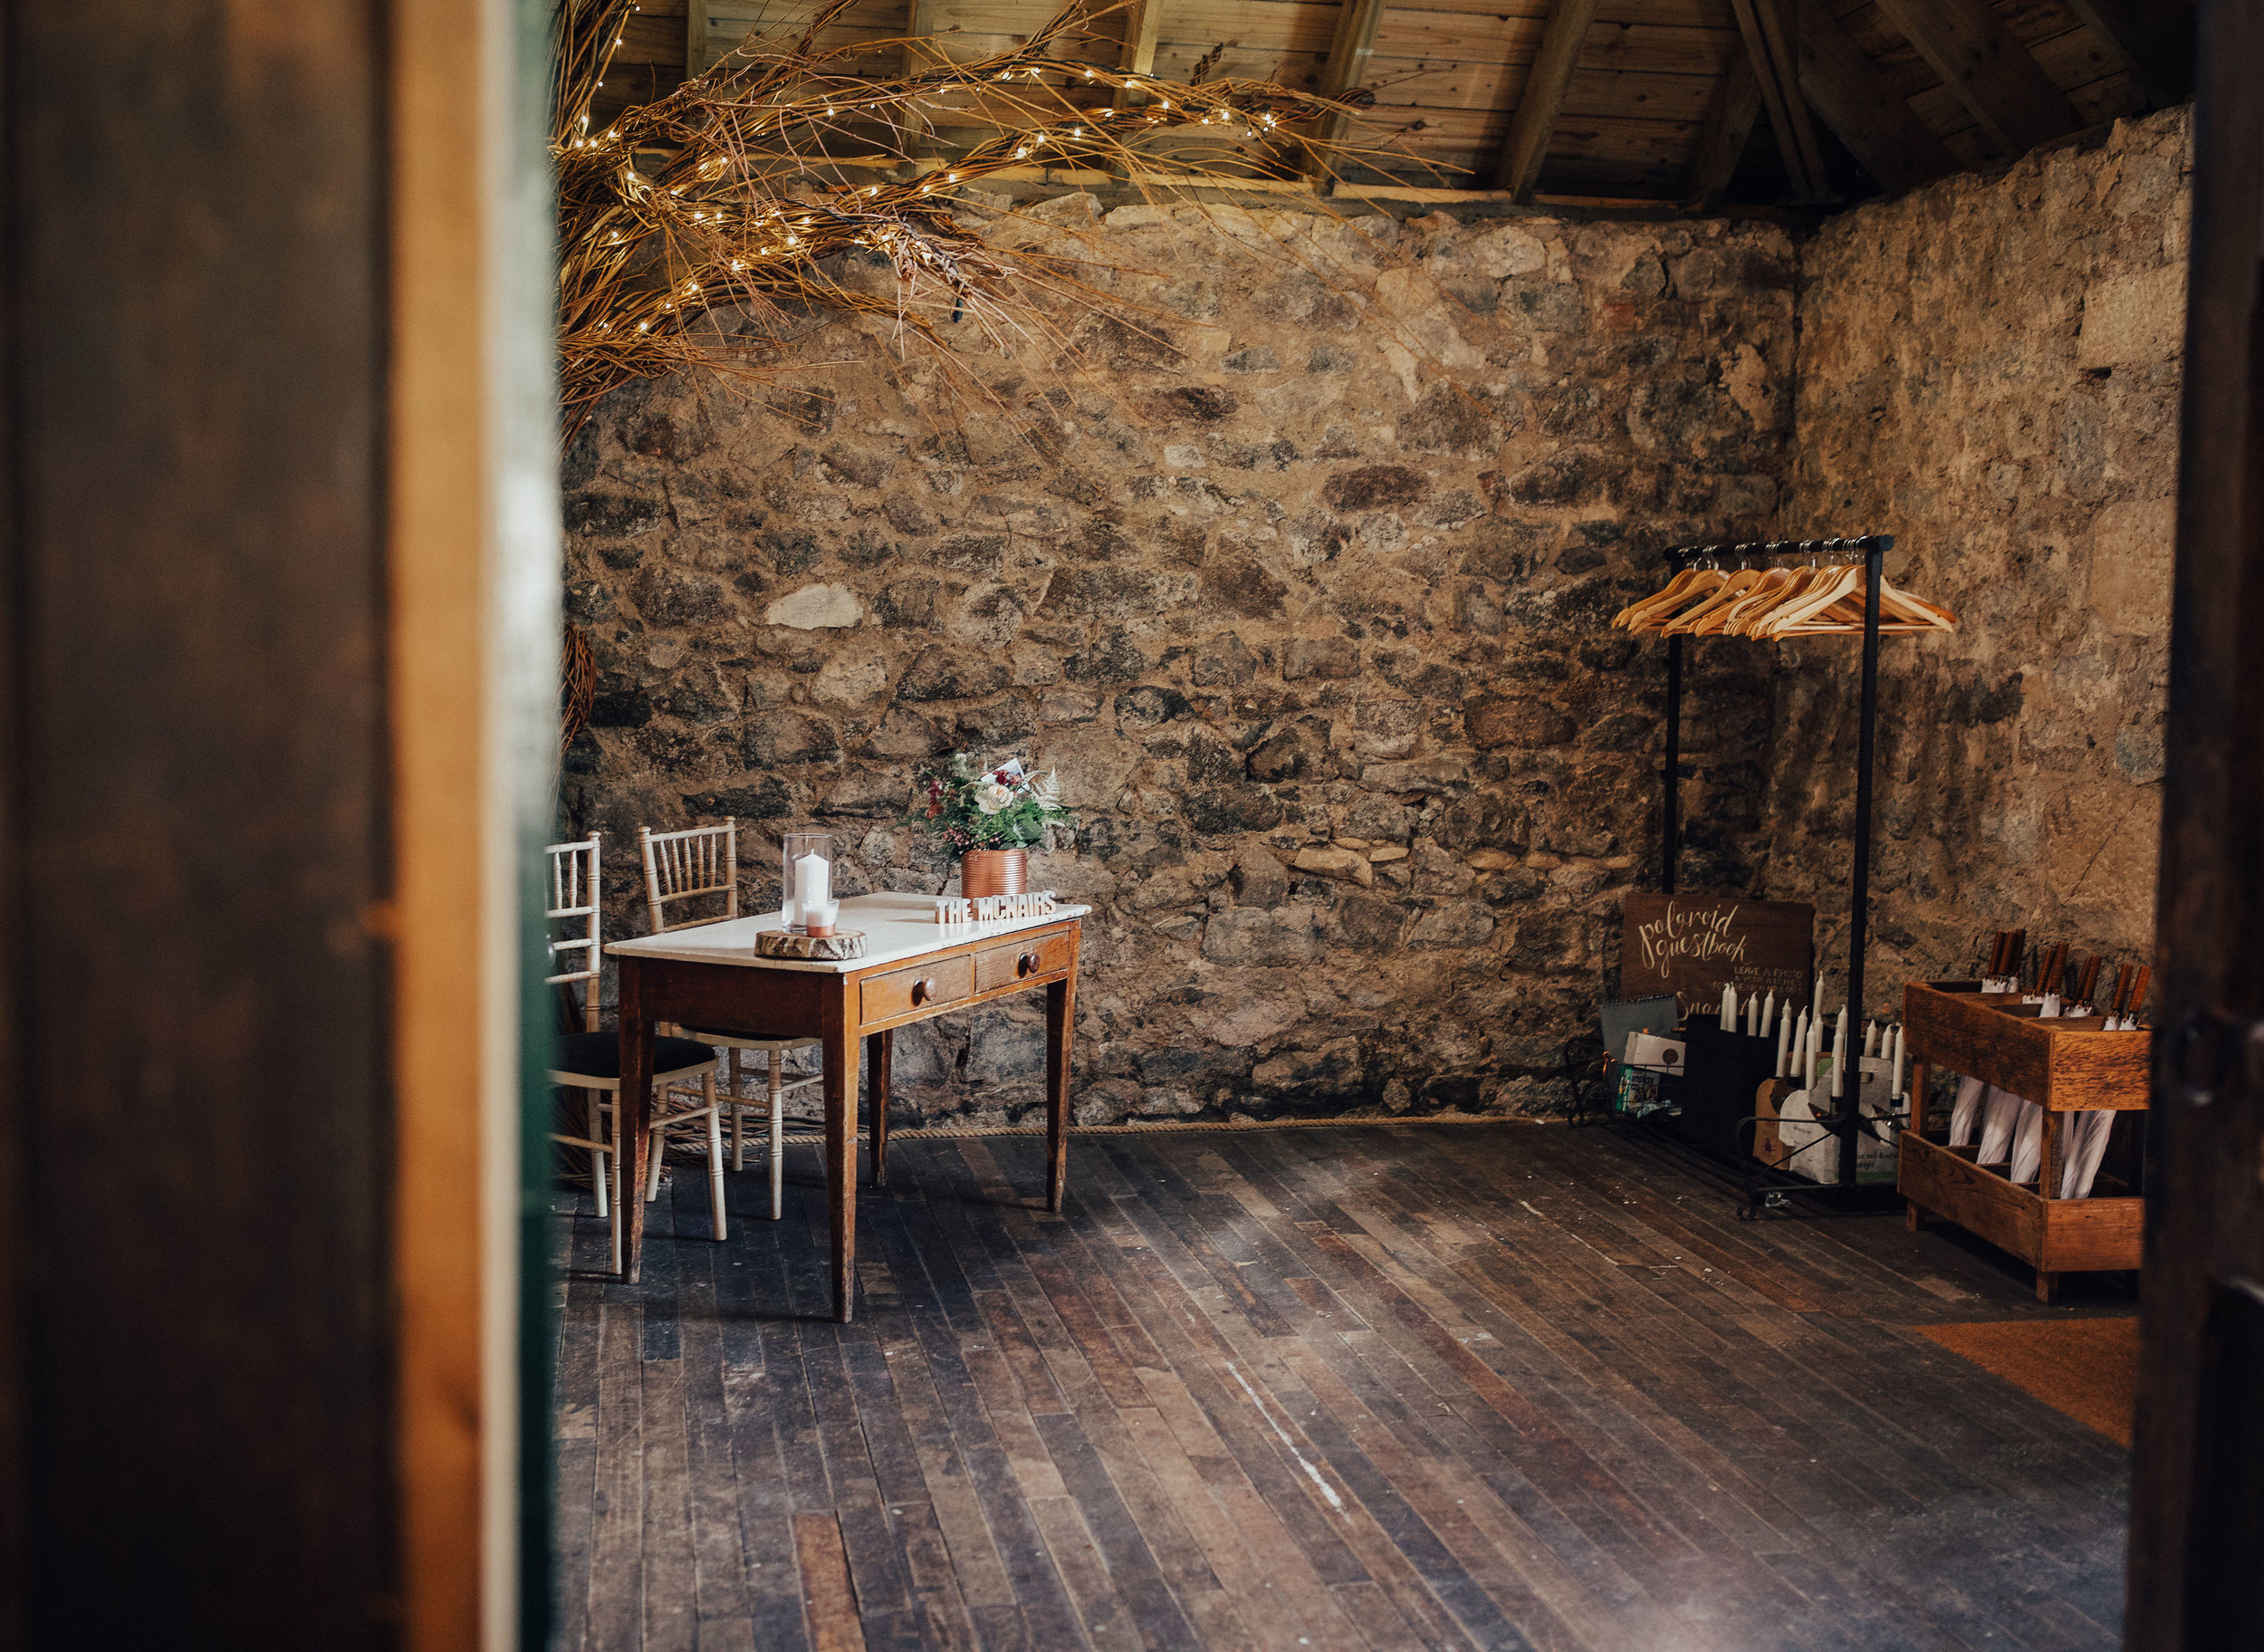 BYRE_AT_INCHYRA_WEDDING_PHOTOGRAPHER_PJ_PHILLIPS_PHOTOGRAPHY_KAYLEIGH_ANDREW_42.jpg